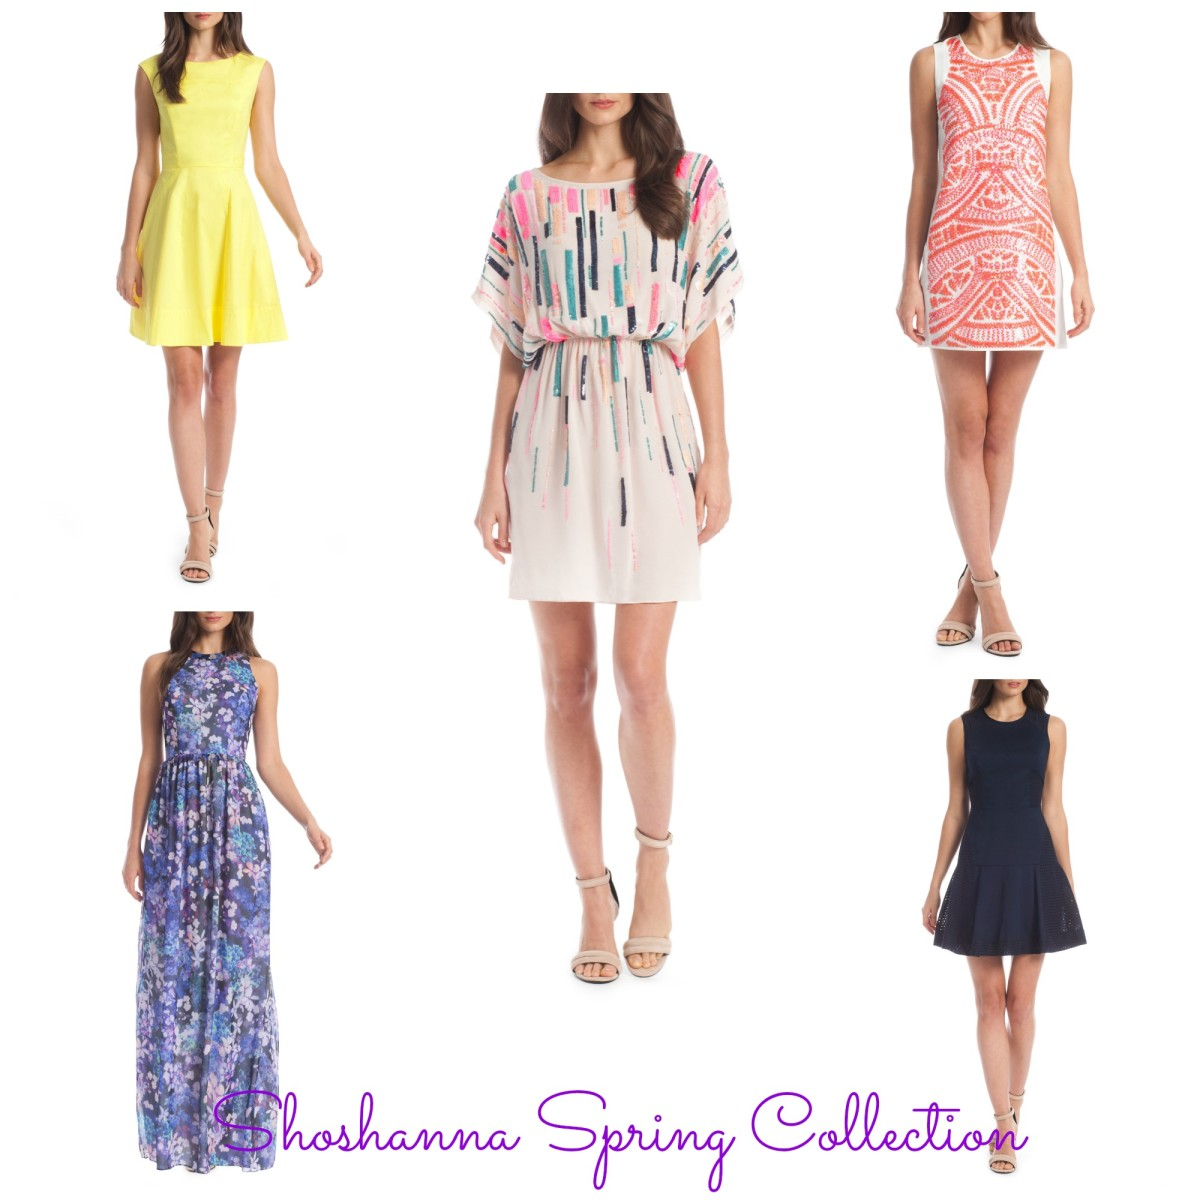 shoshanna spring preview